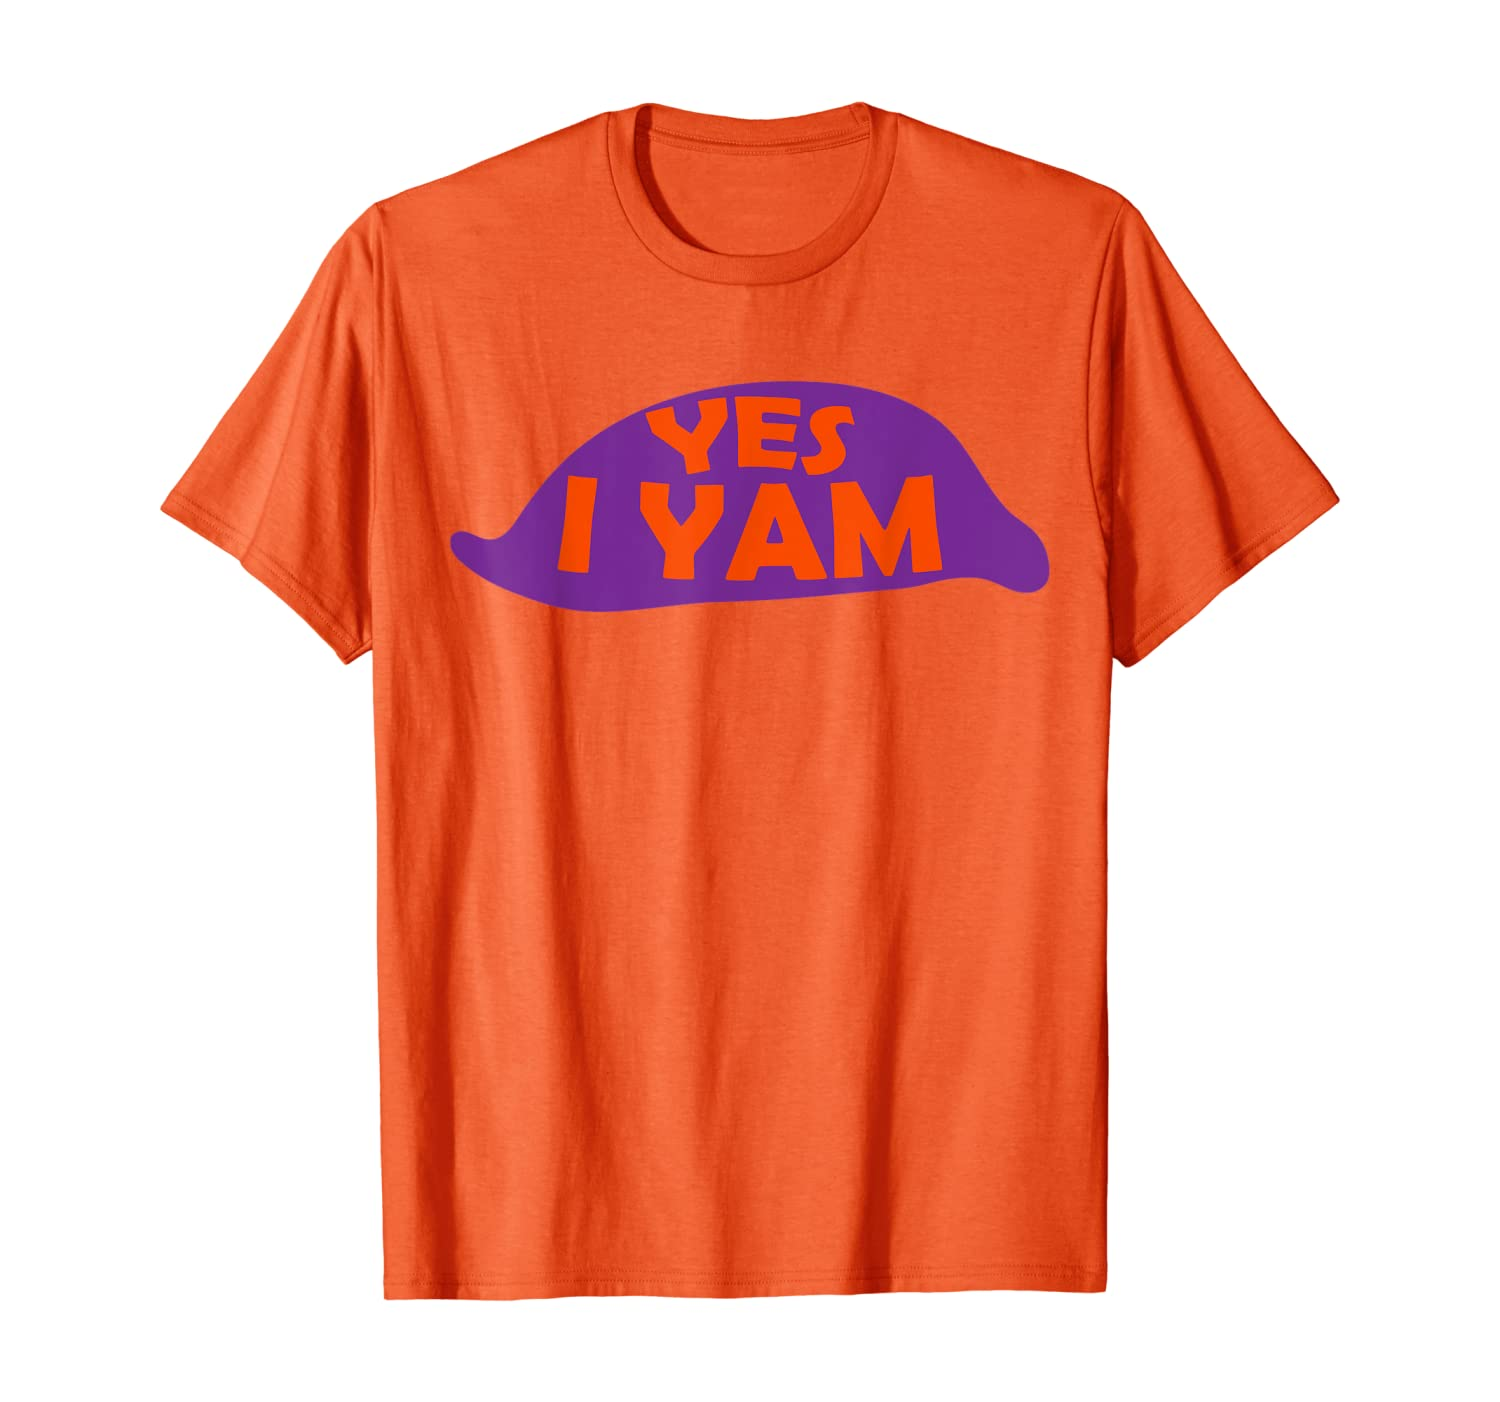 &quot-yes I Yam T Shirt&quot- She's My Sweet Potato Funny Couples Gift T-shirt